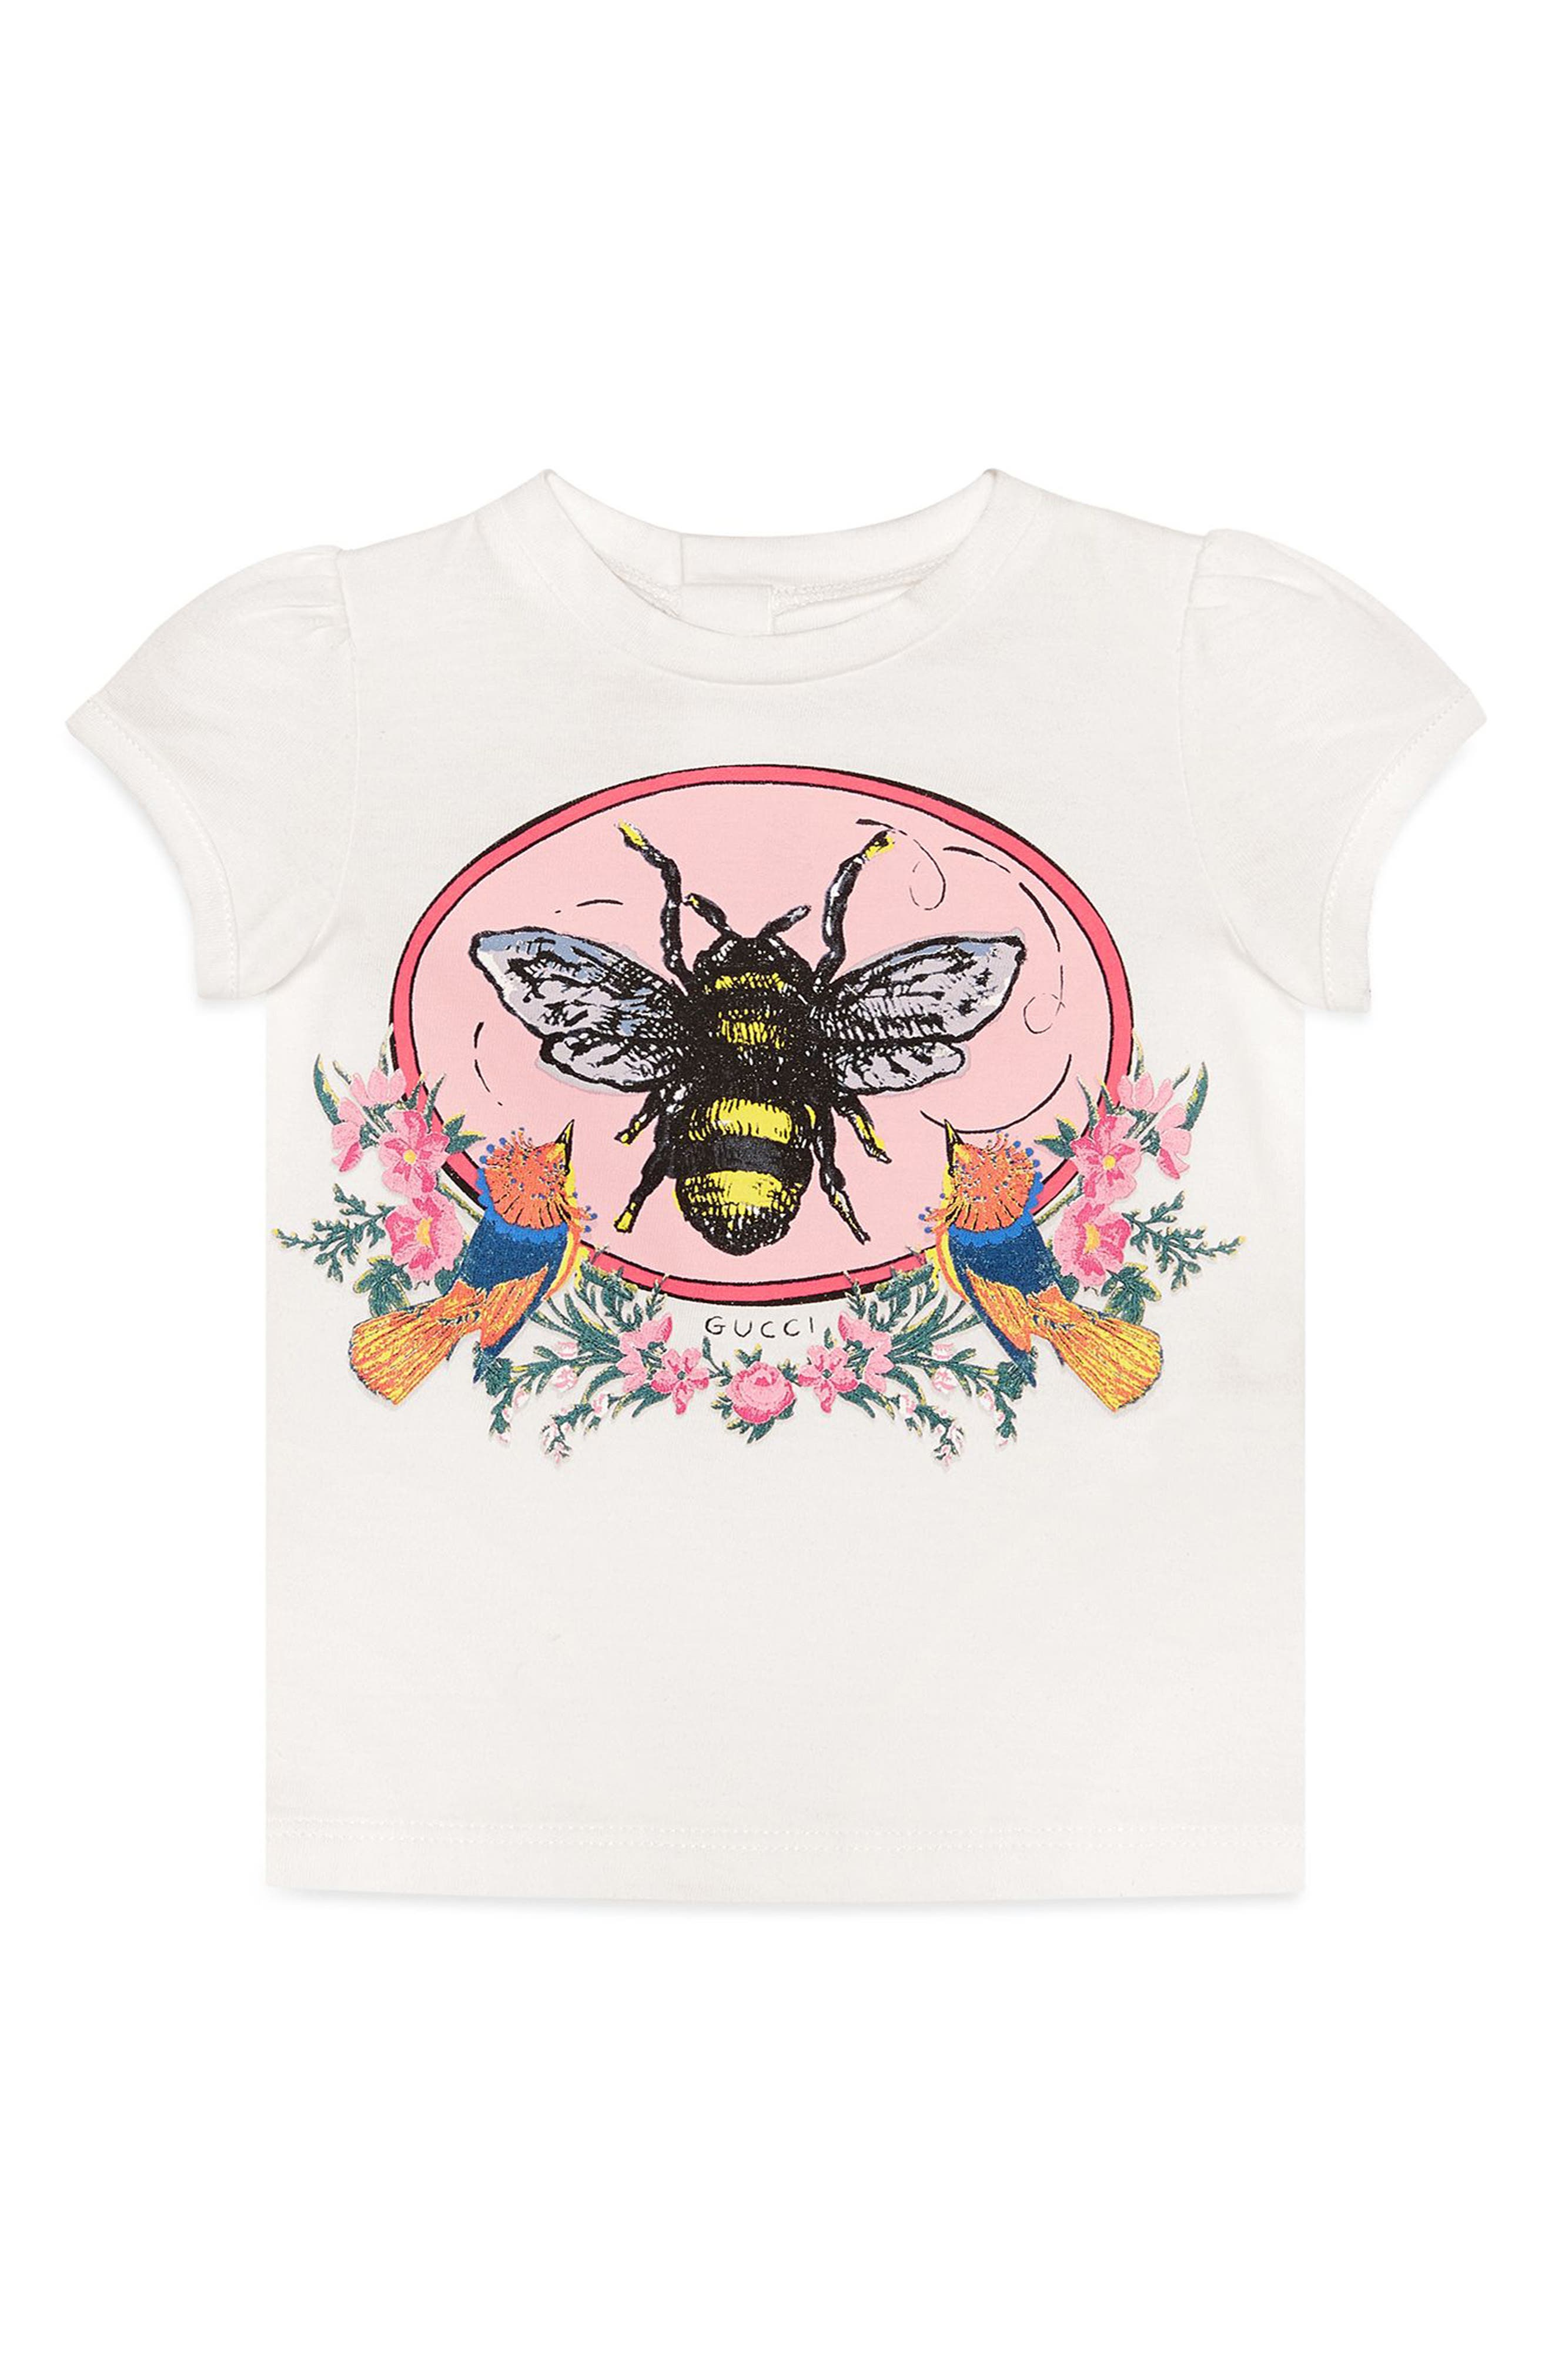 Alternate Image 1 Selected - Gucci Bee Graphic Tee (Baby Girls)